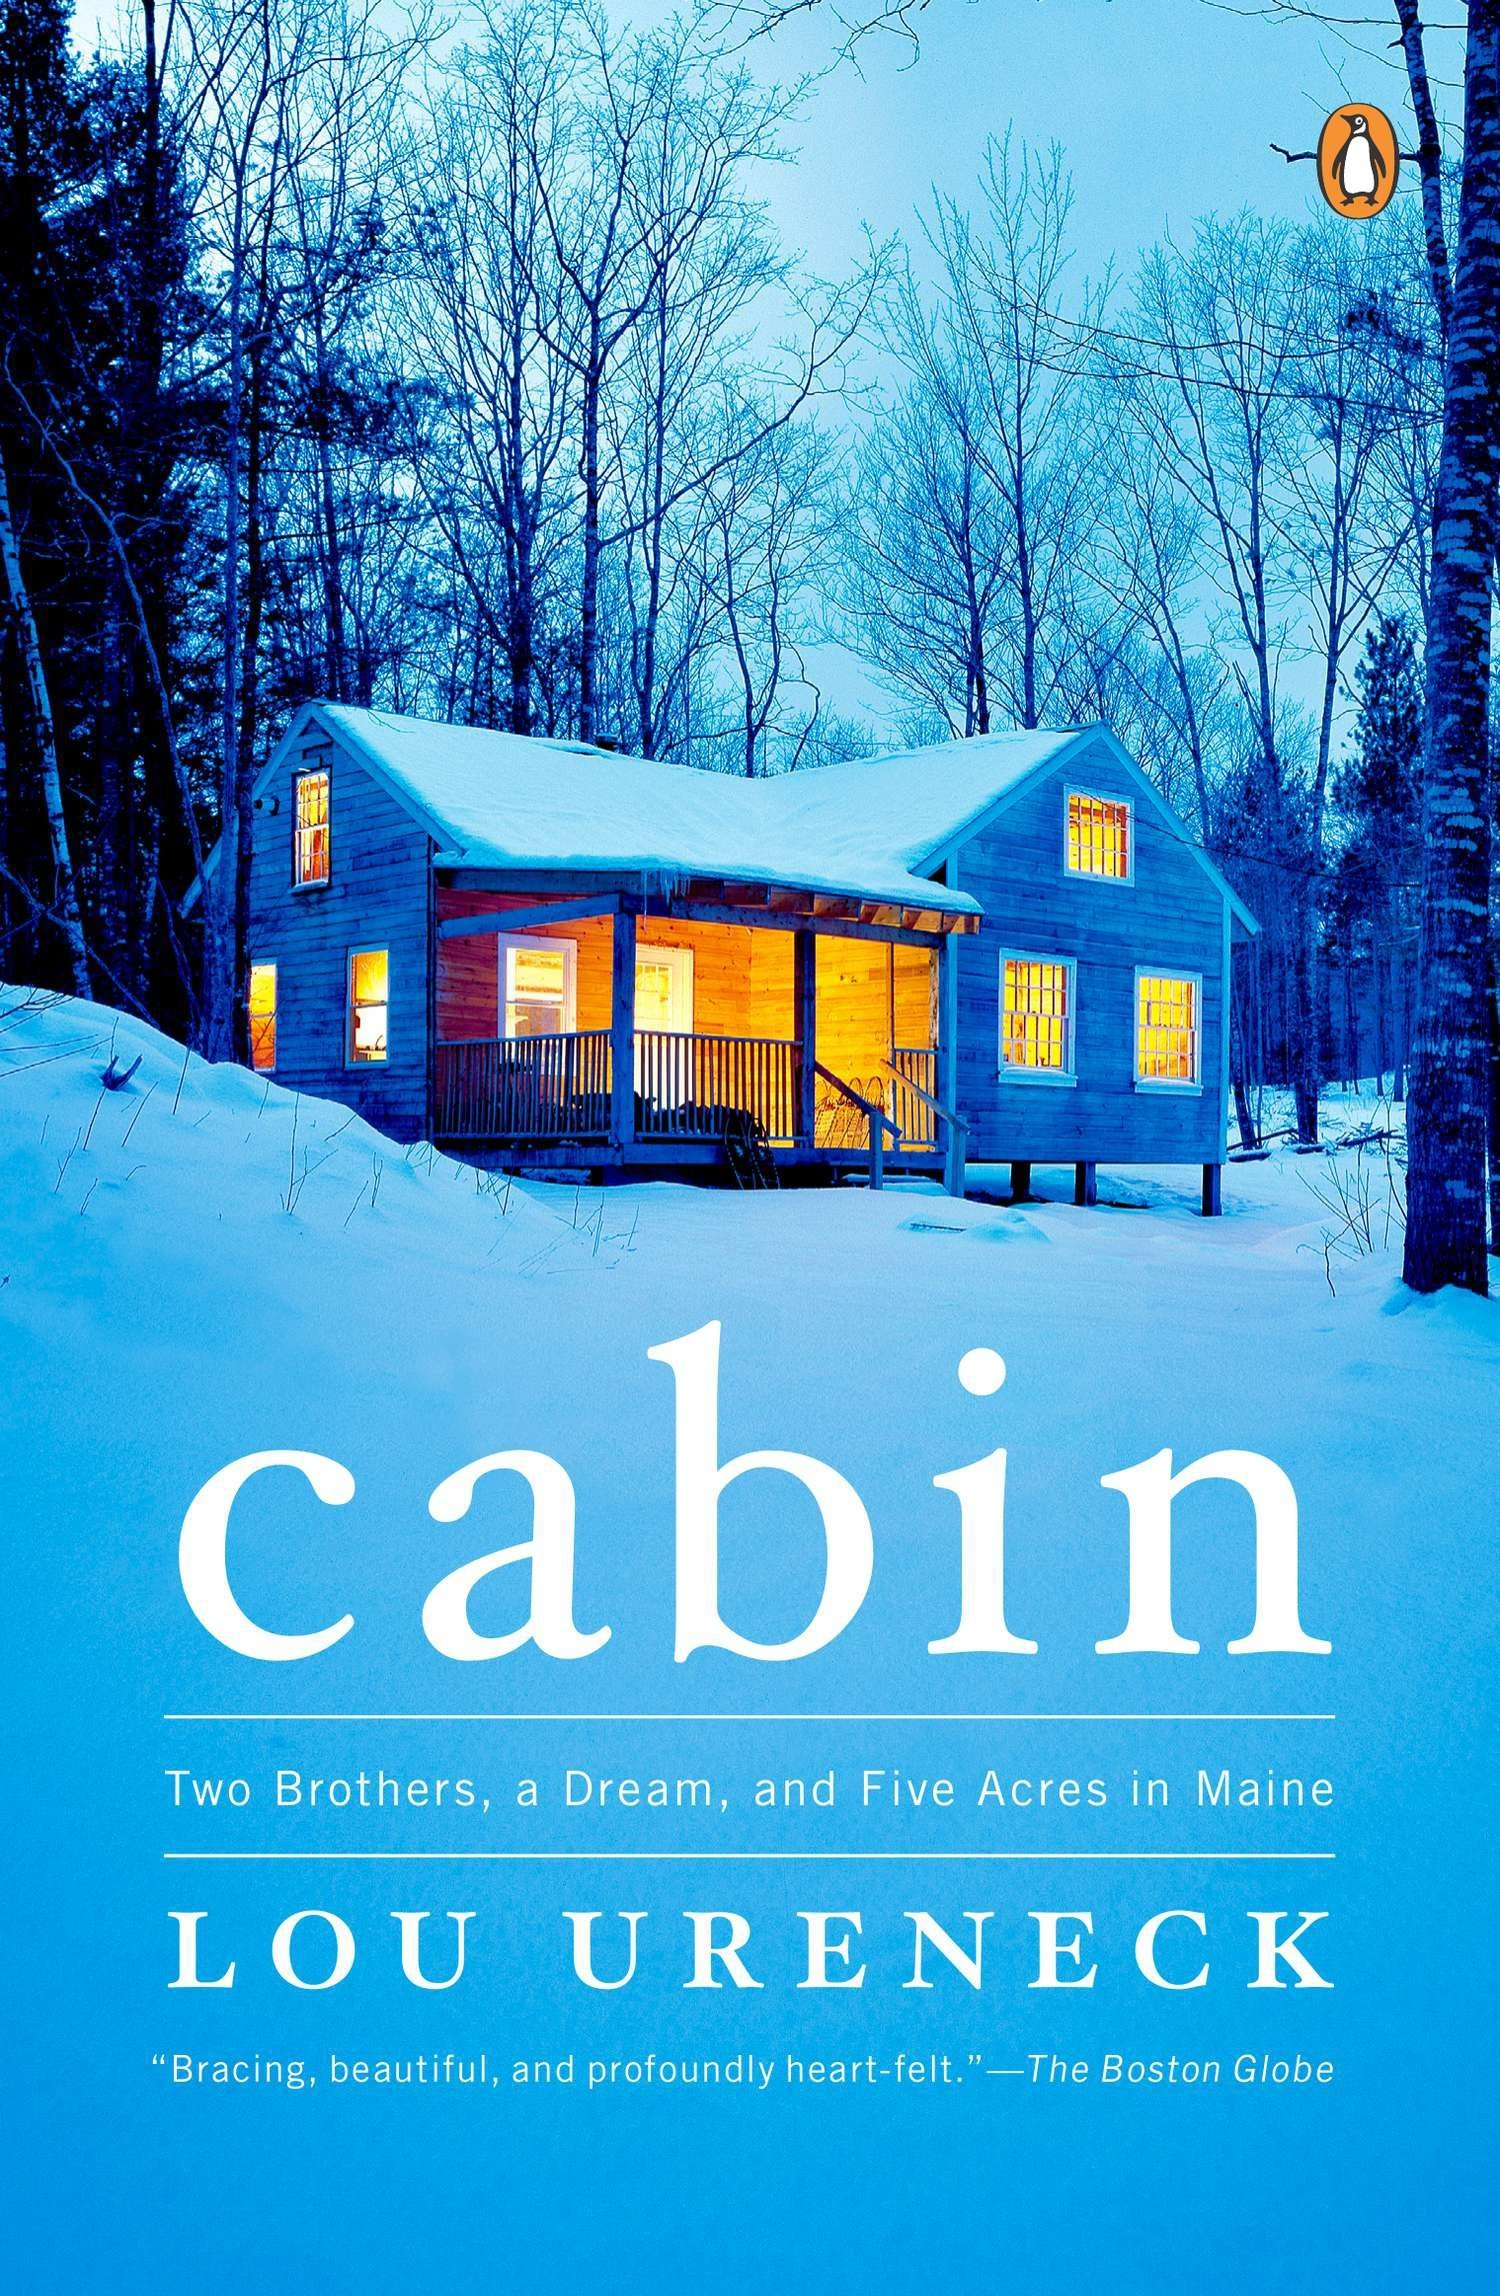 After a string of setbacks, a journalist reassembles his life in the mountains of Maine